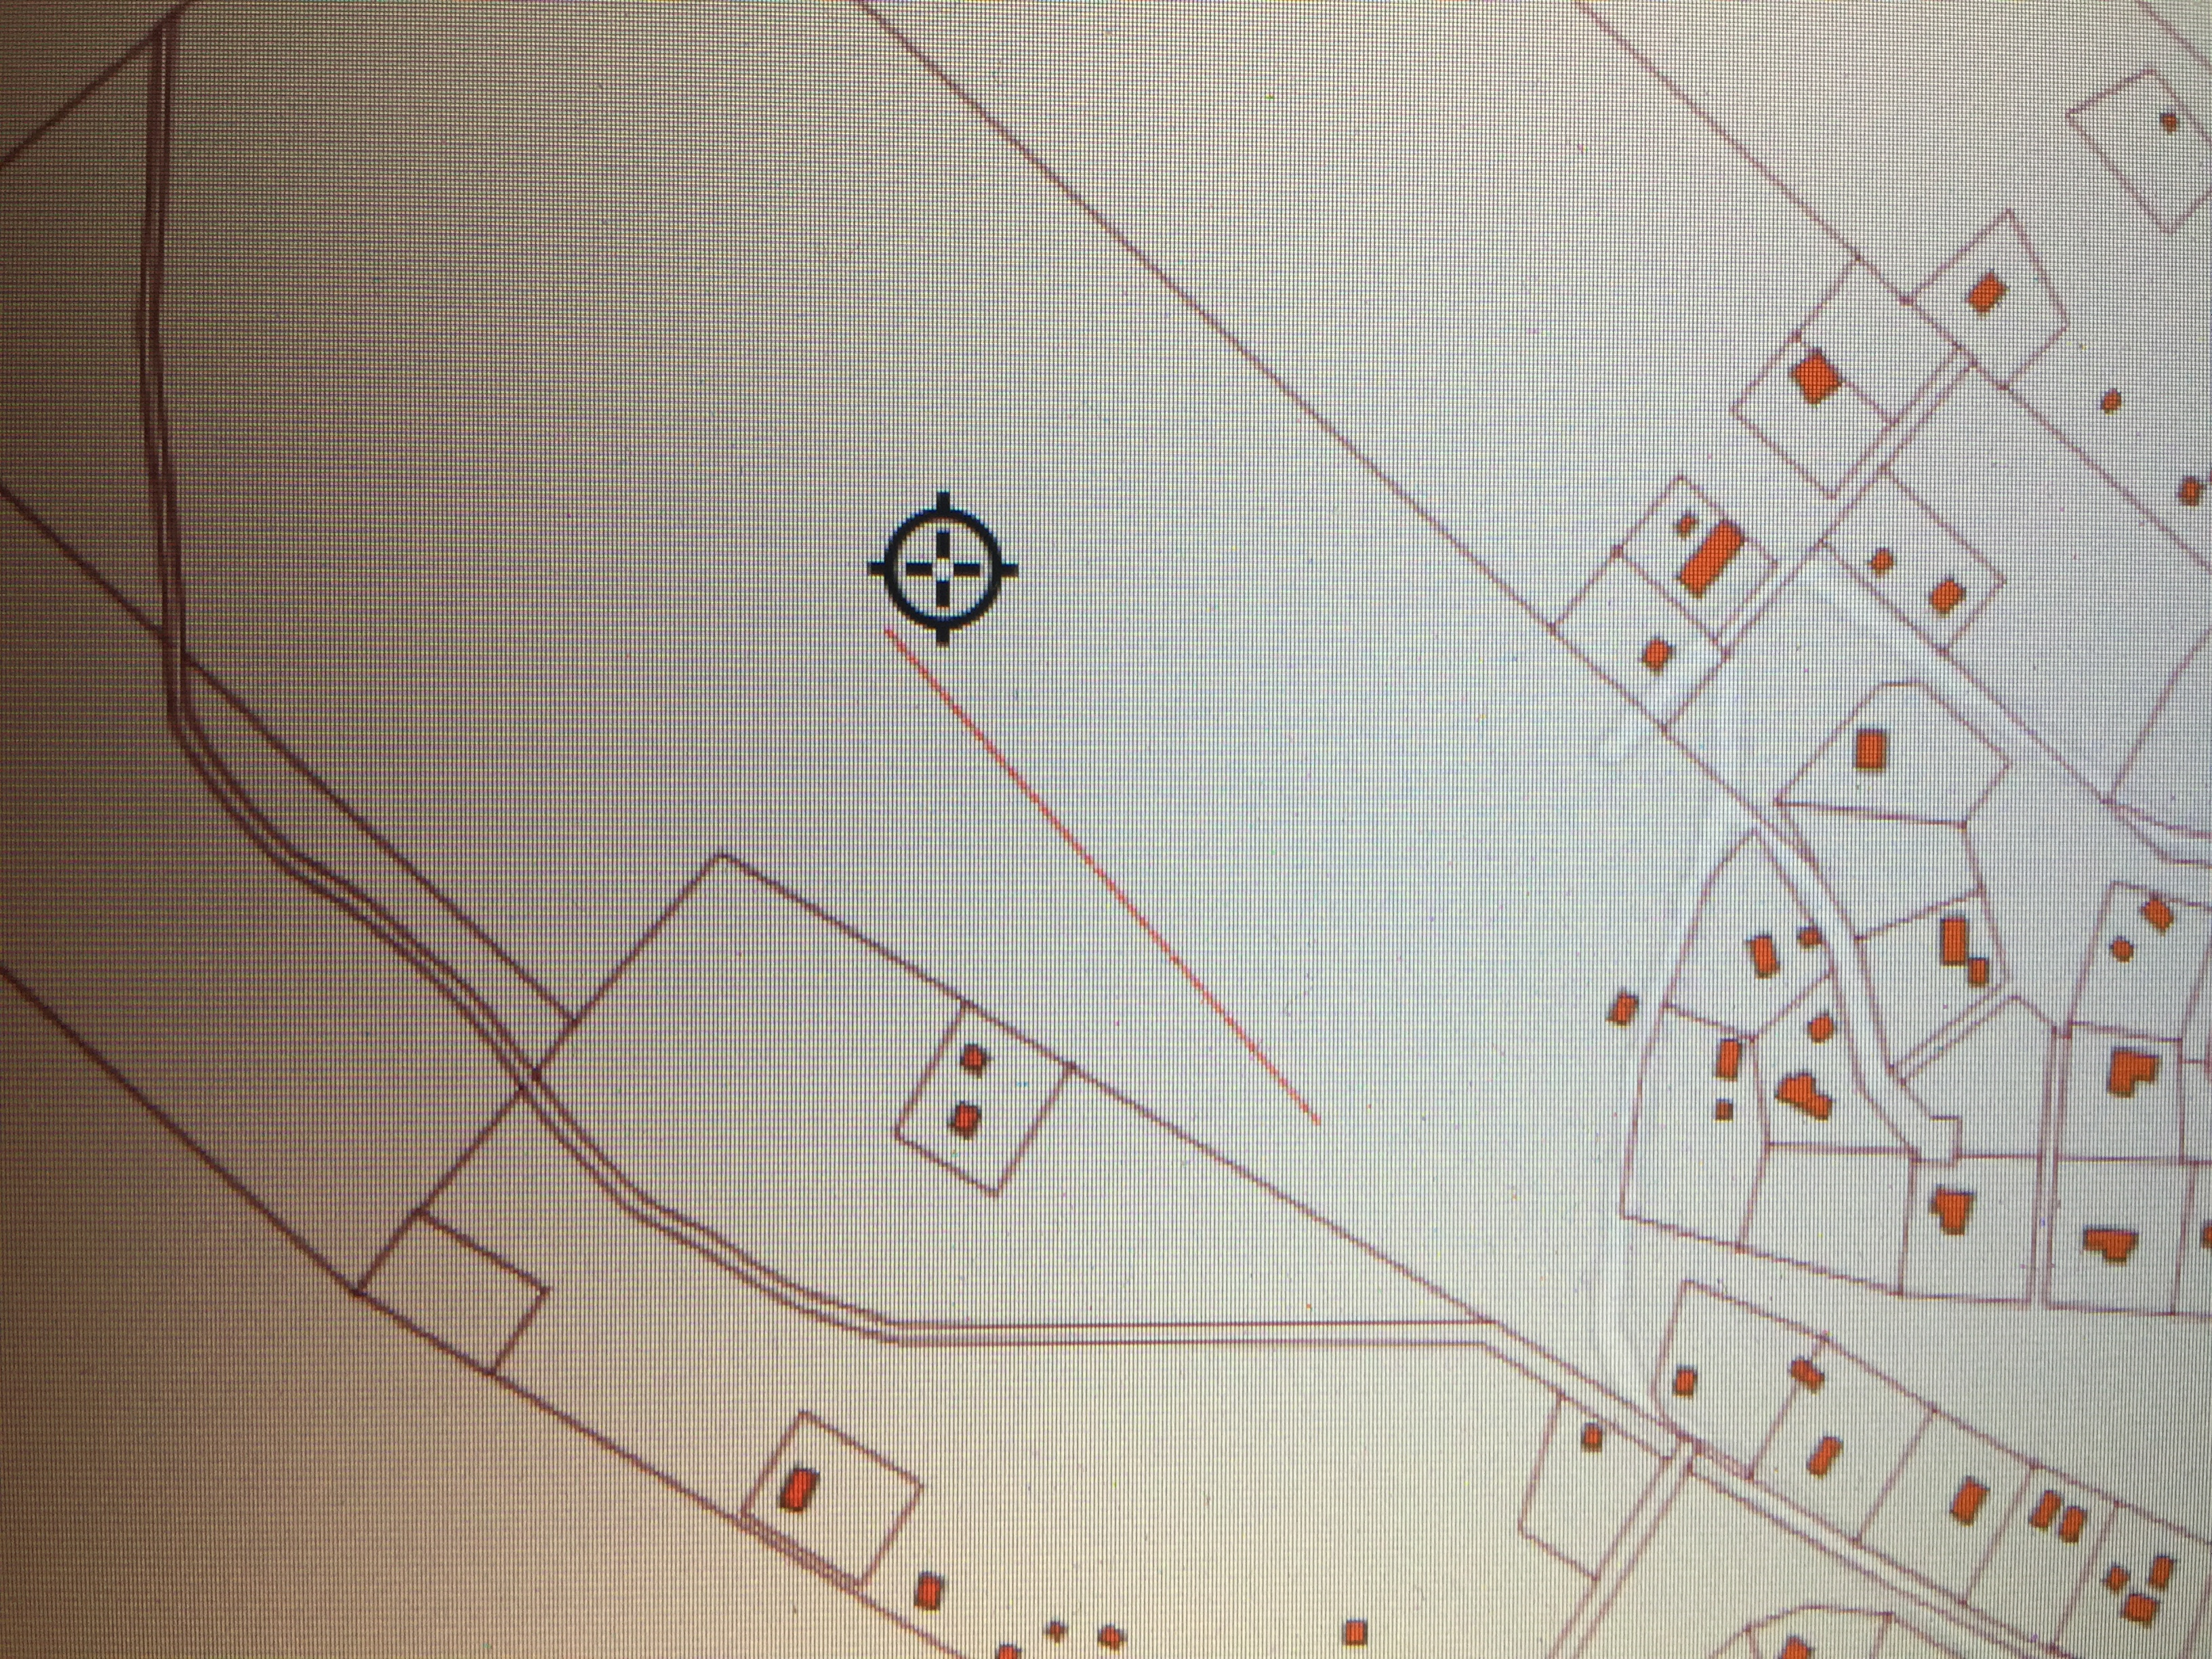 Bug report #18622: Mouse pointer displacement - QGIS